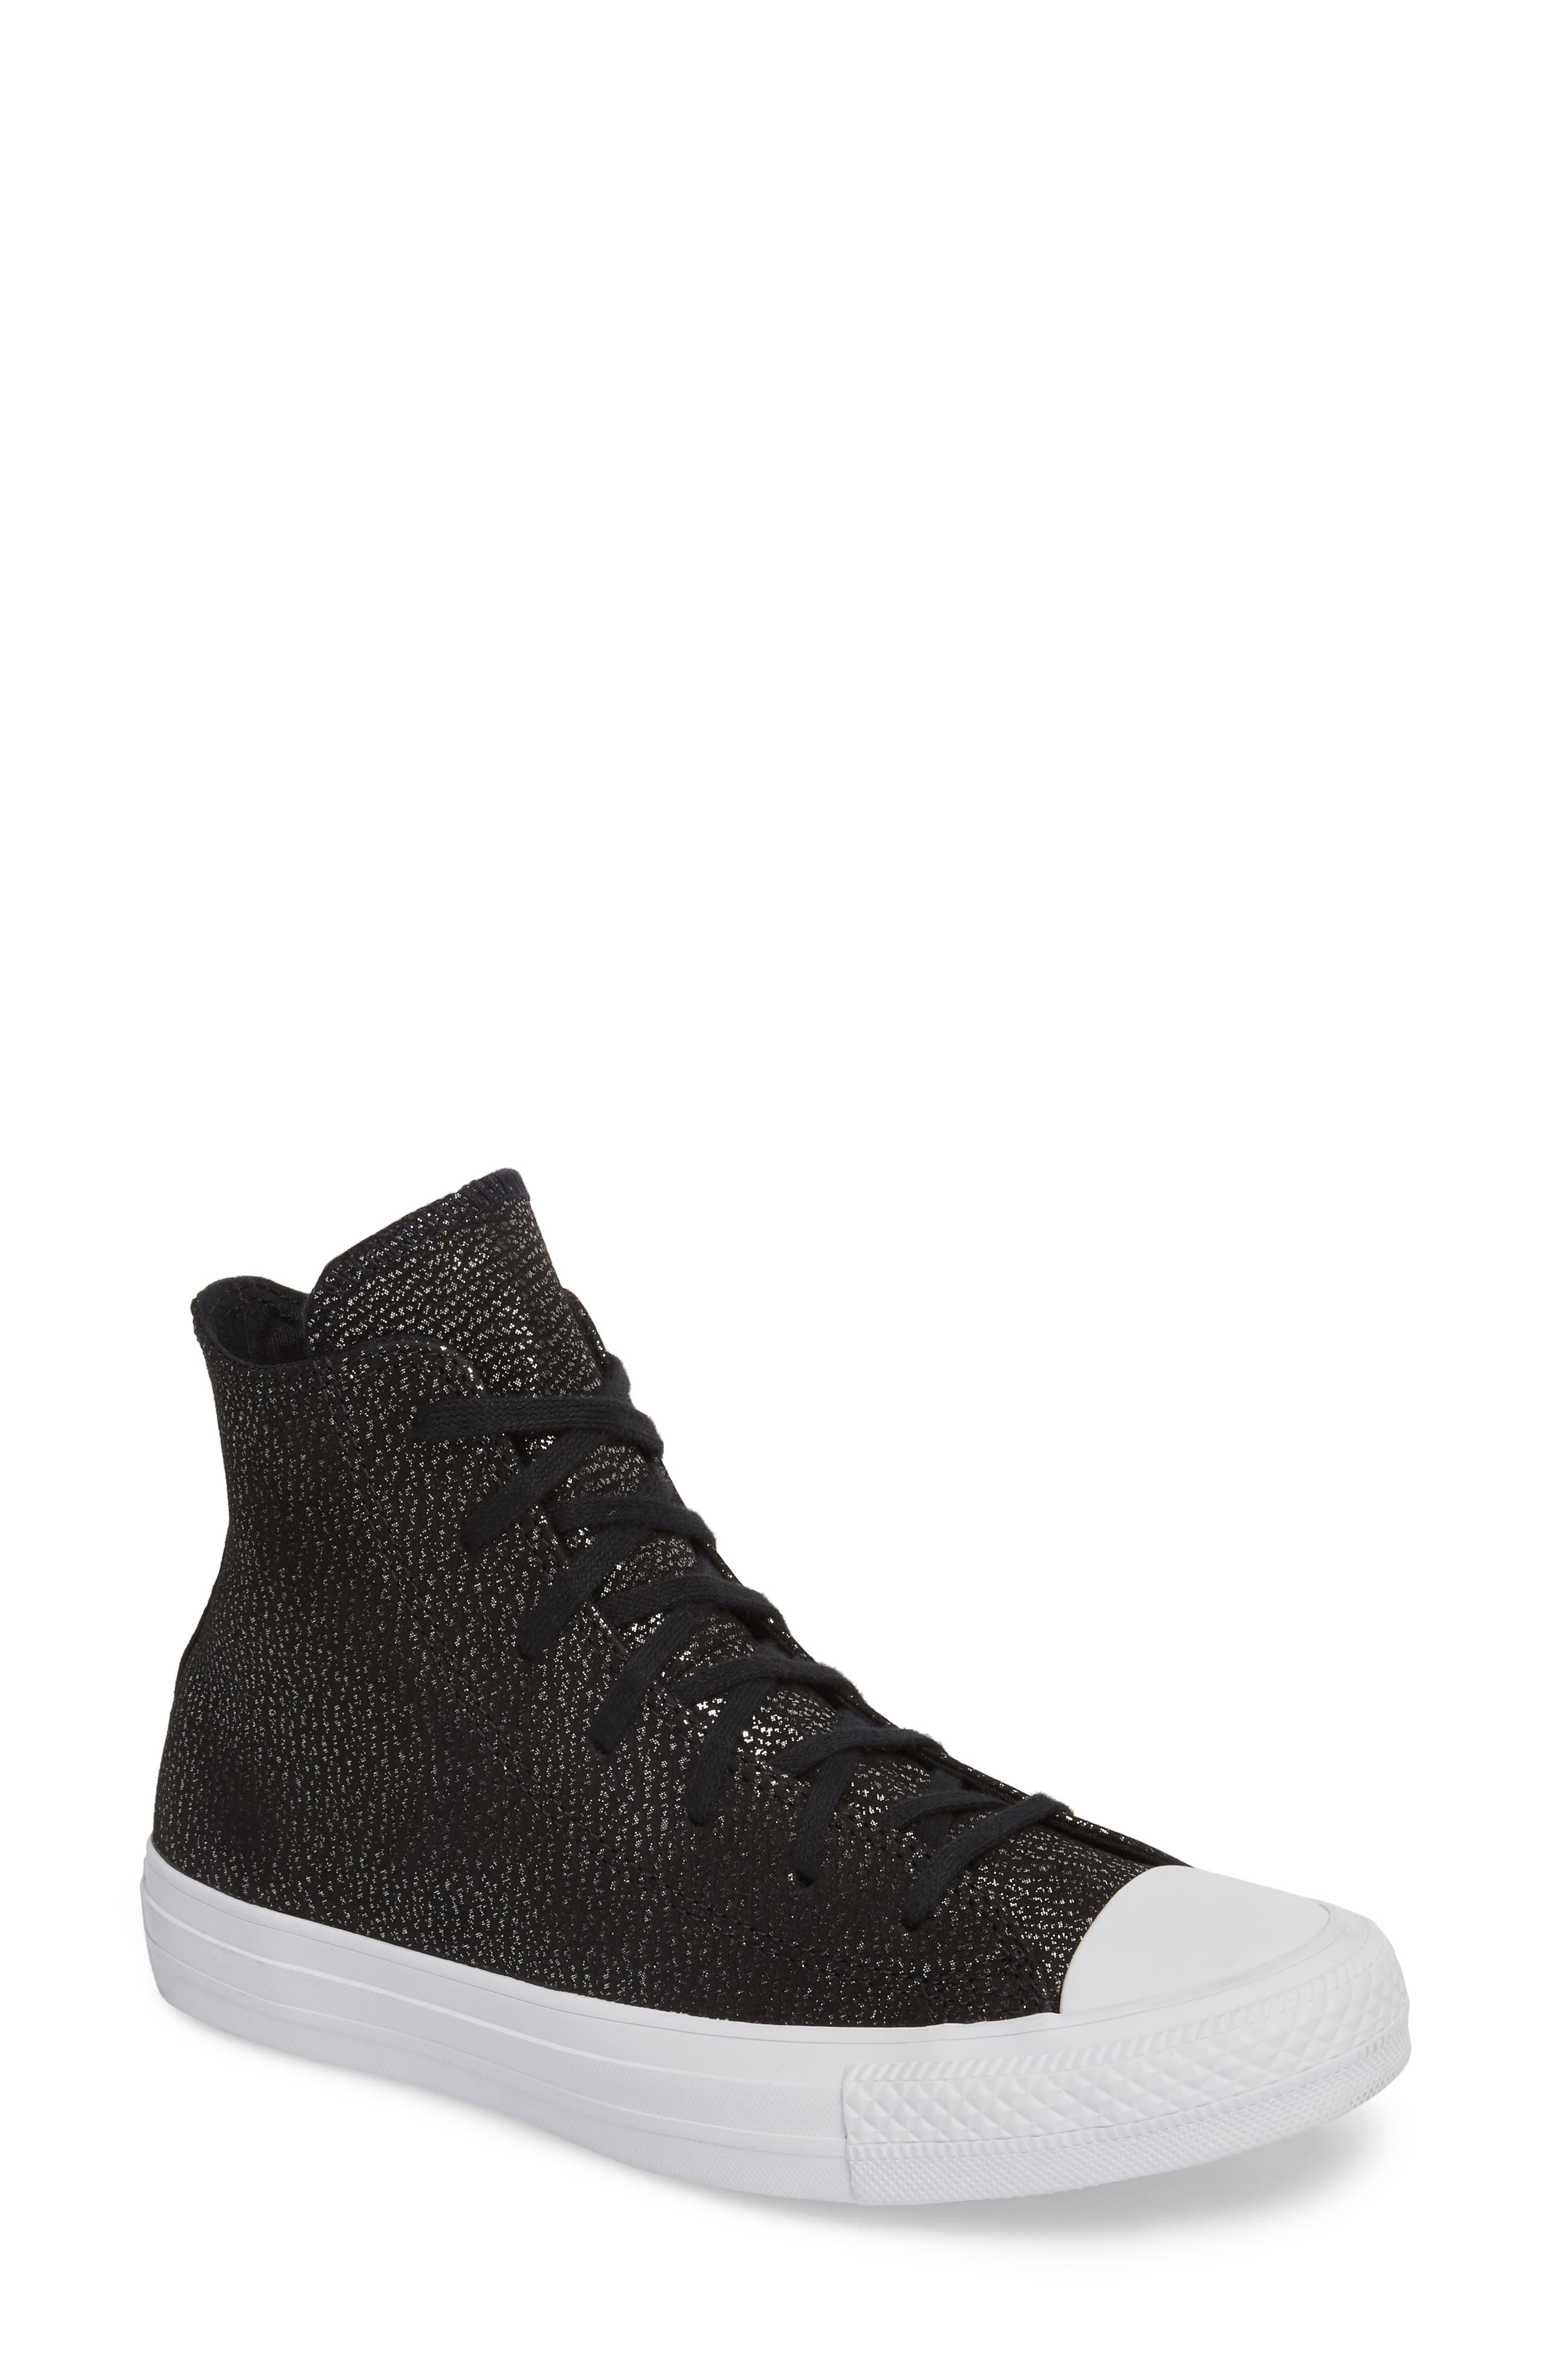 Chuck Taylor<sup>®</sup> All Star<sup>®</sup> Tipped Metallic High Top Sneaker,                         Main,                         color,